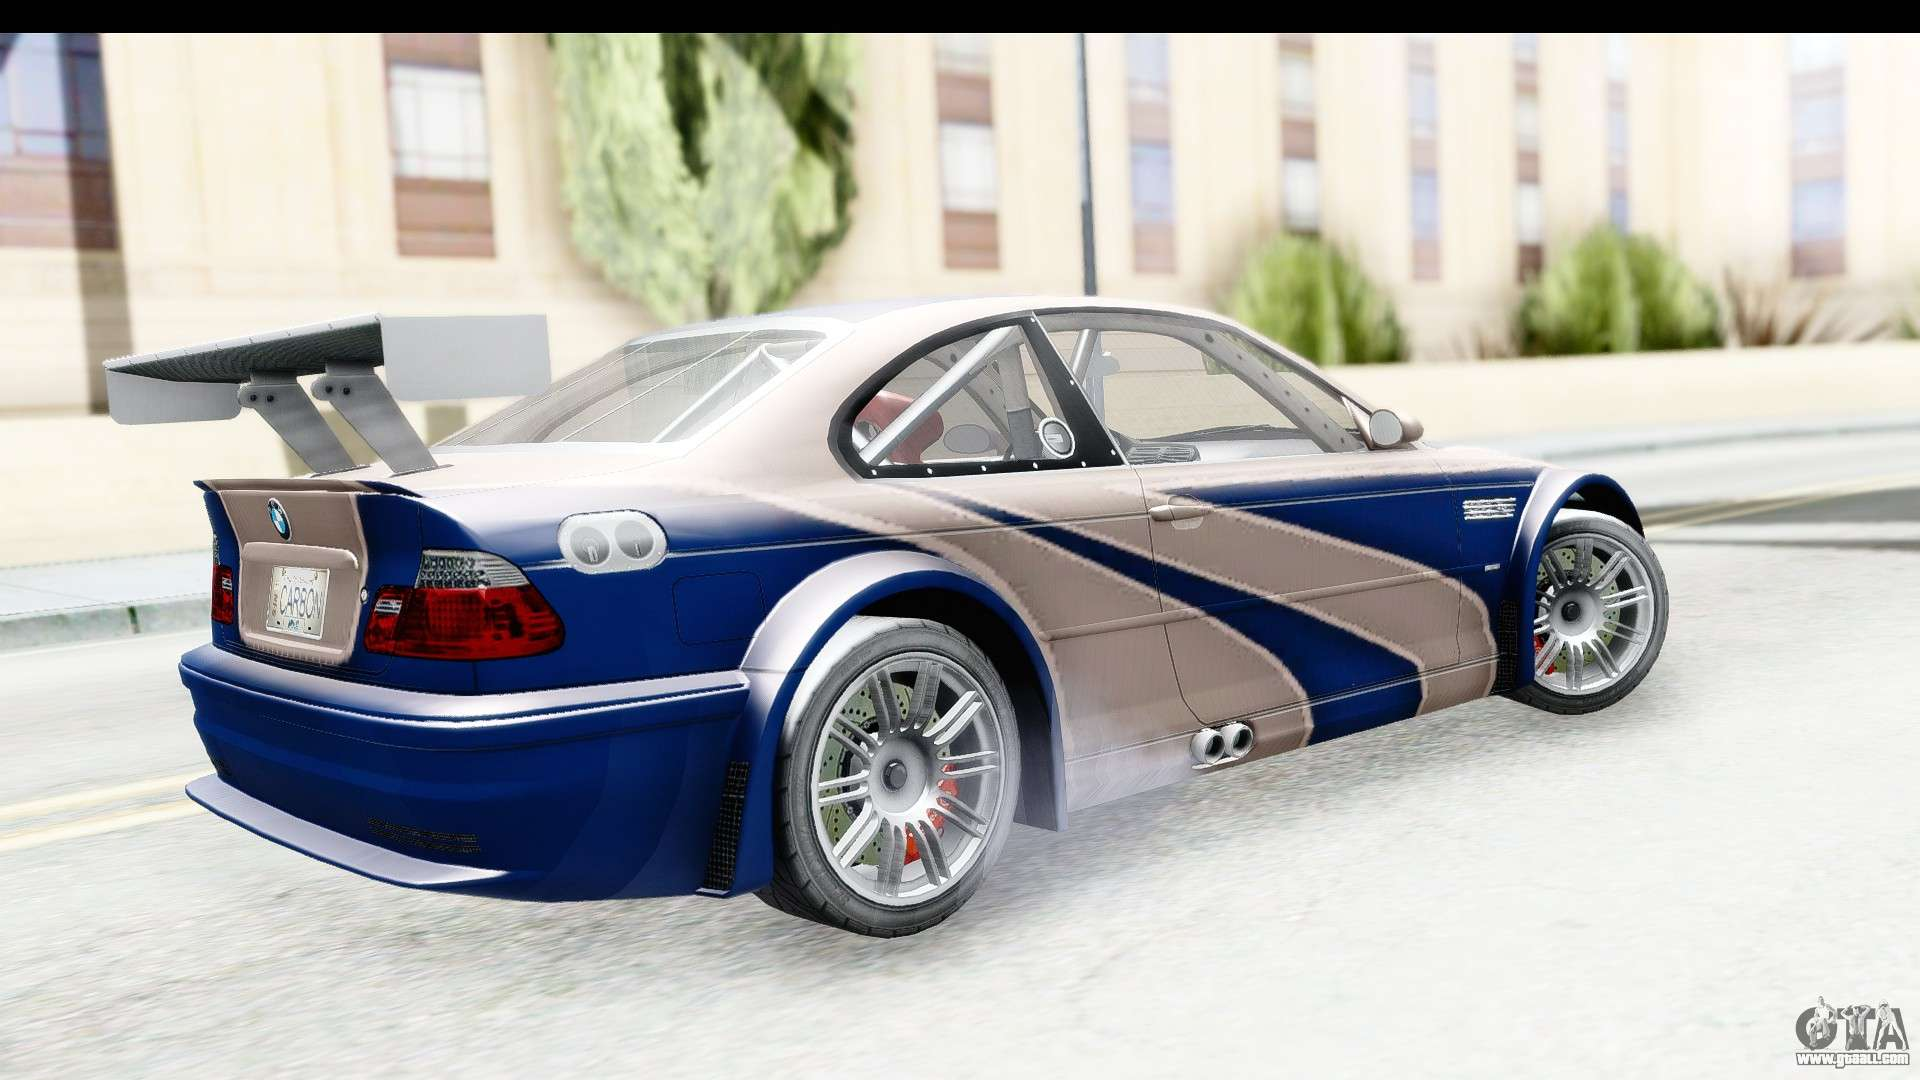 Nfs Carbon Bmw M3 Gtr For Gta San Andreas